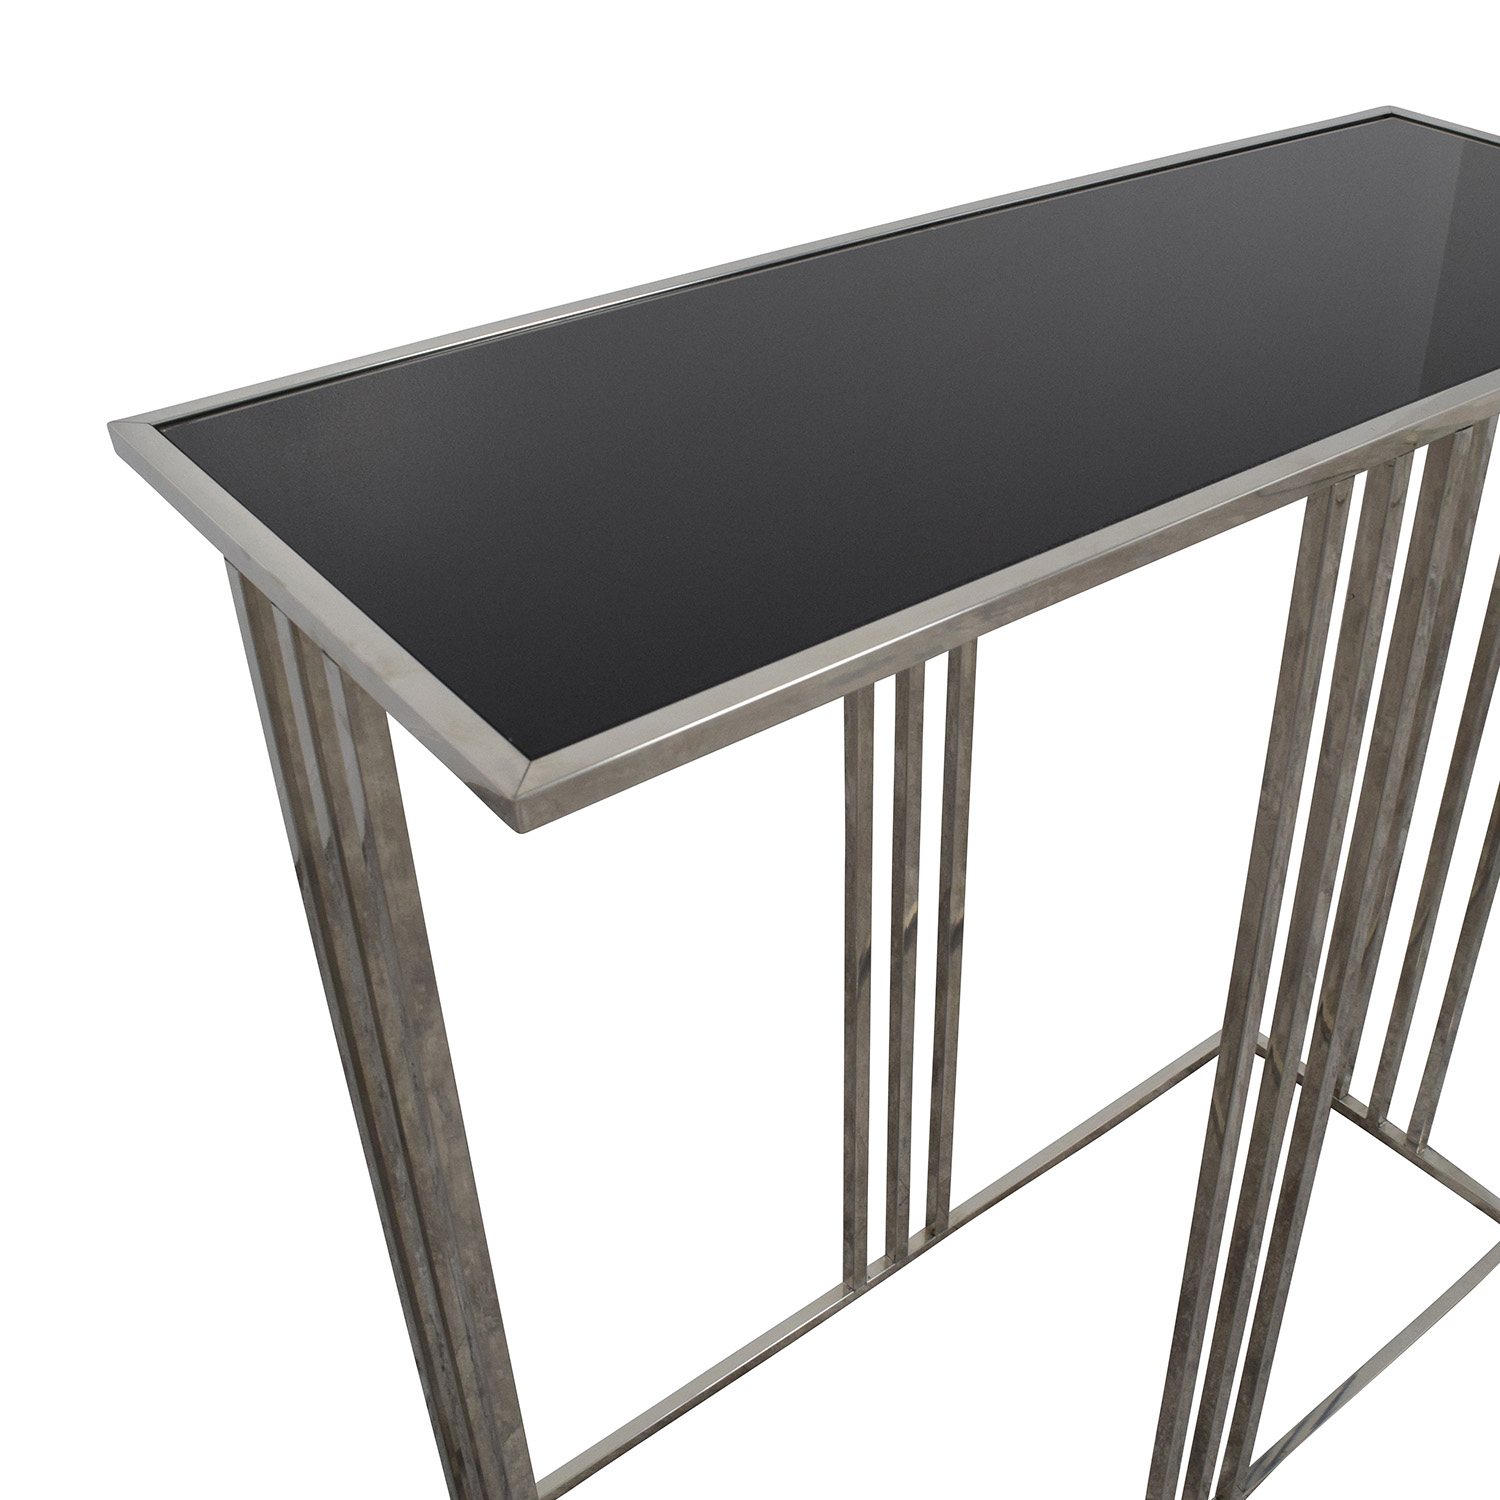 73 Off Marshalls Homegoods Marshalls Homegoods Black And Silver Console Entryway Table Tables